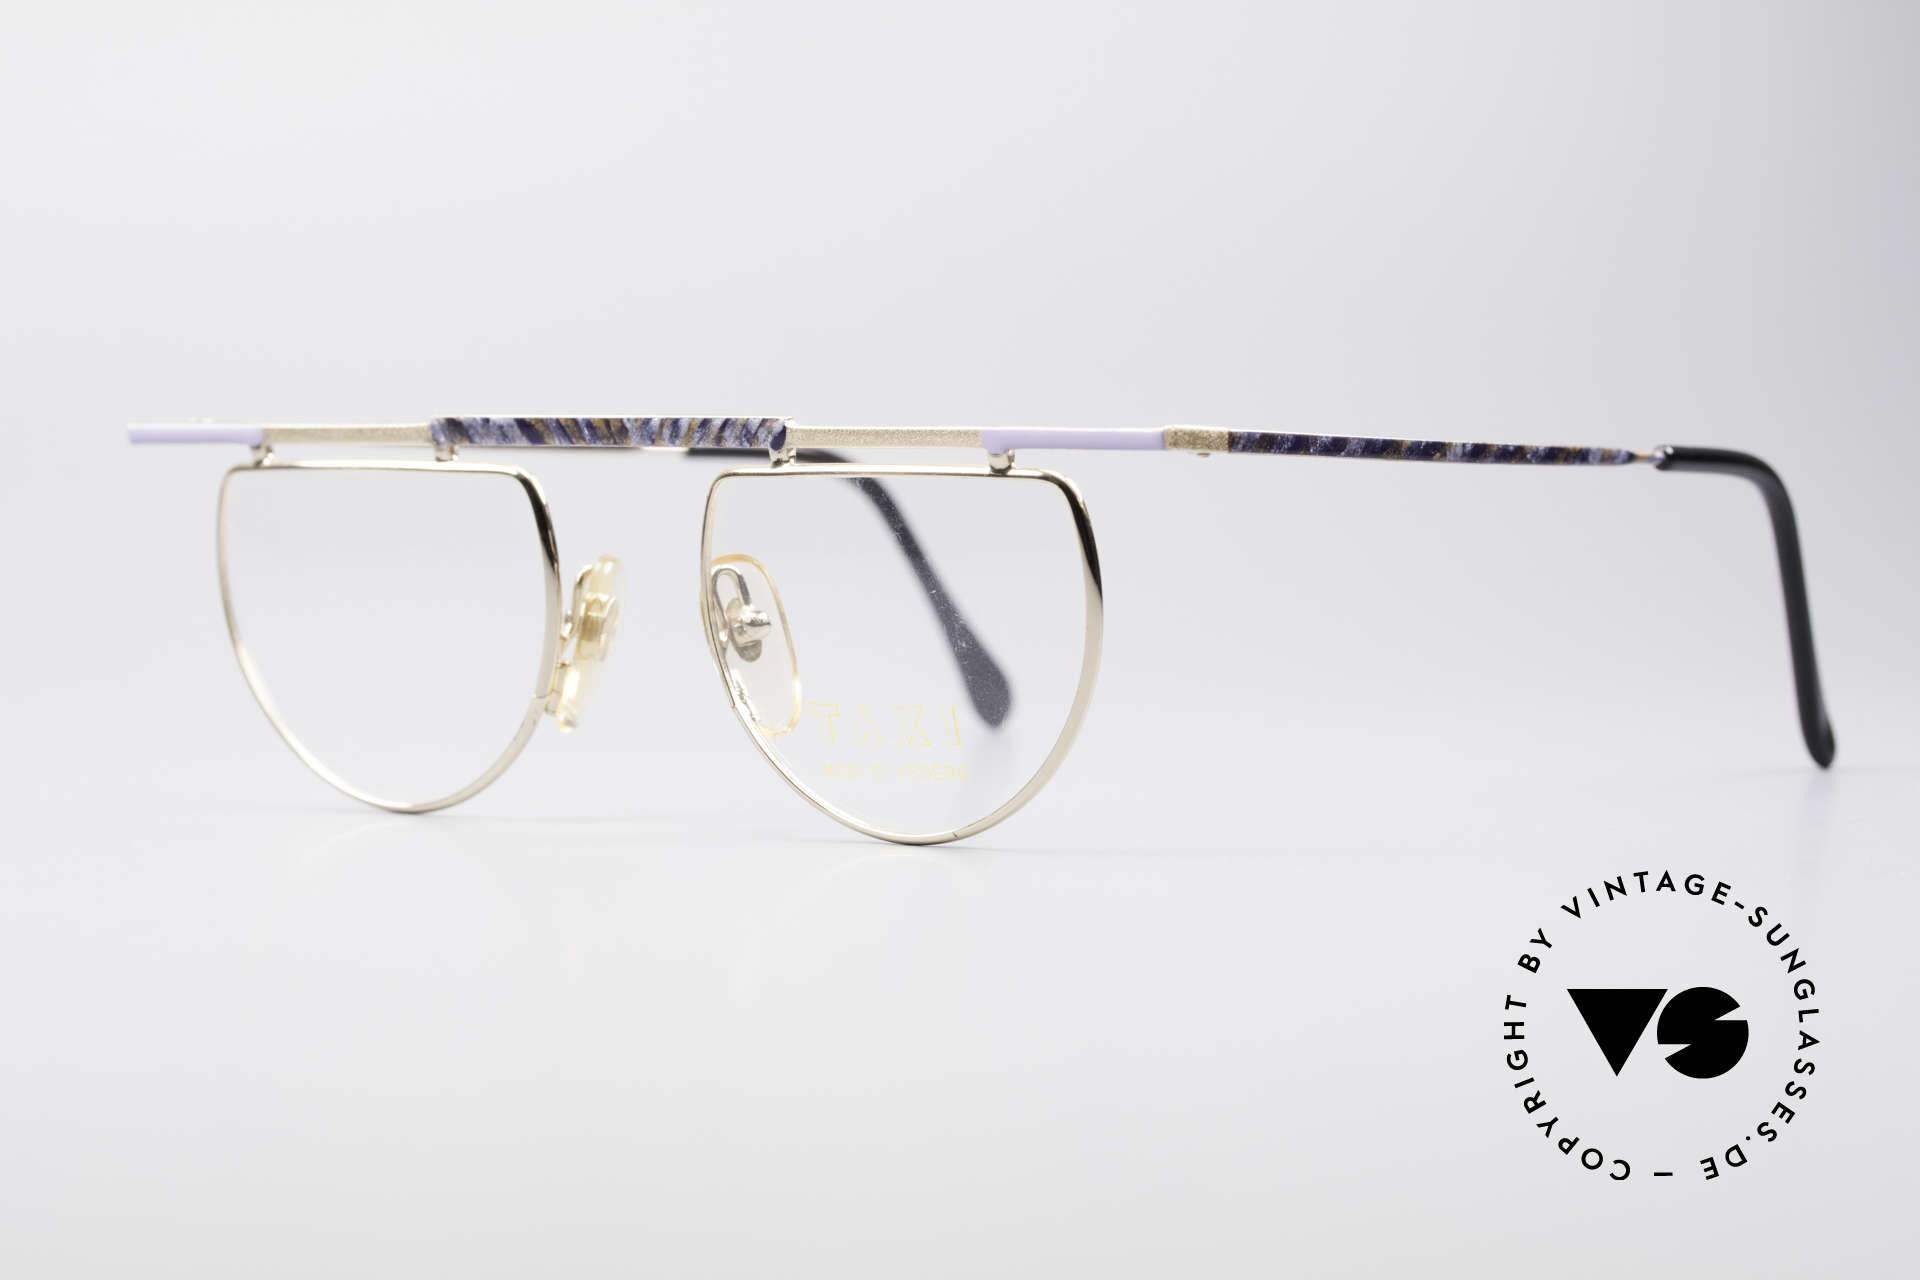 Taxi 223 by Casanova Vintage Art Eyeglasses, model represents the exuberance of the Venetian carnival, Made for Women